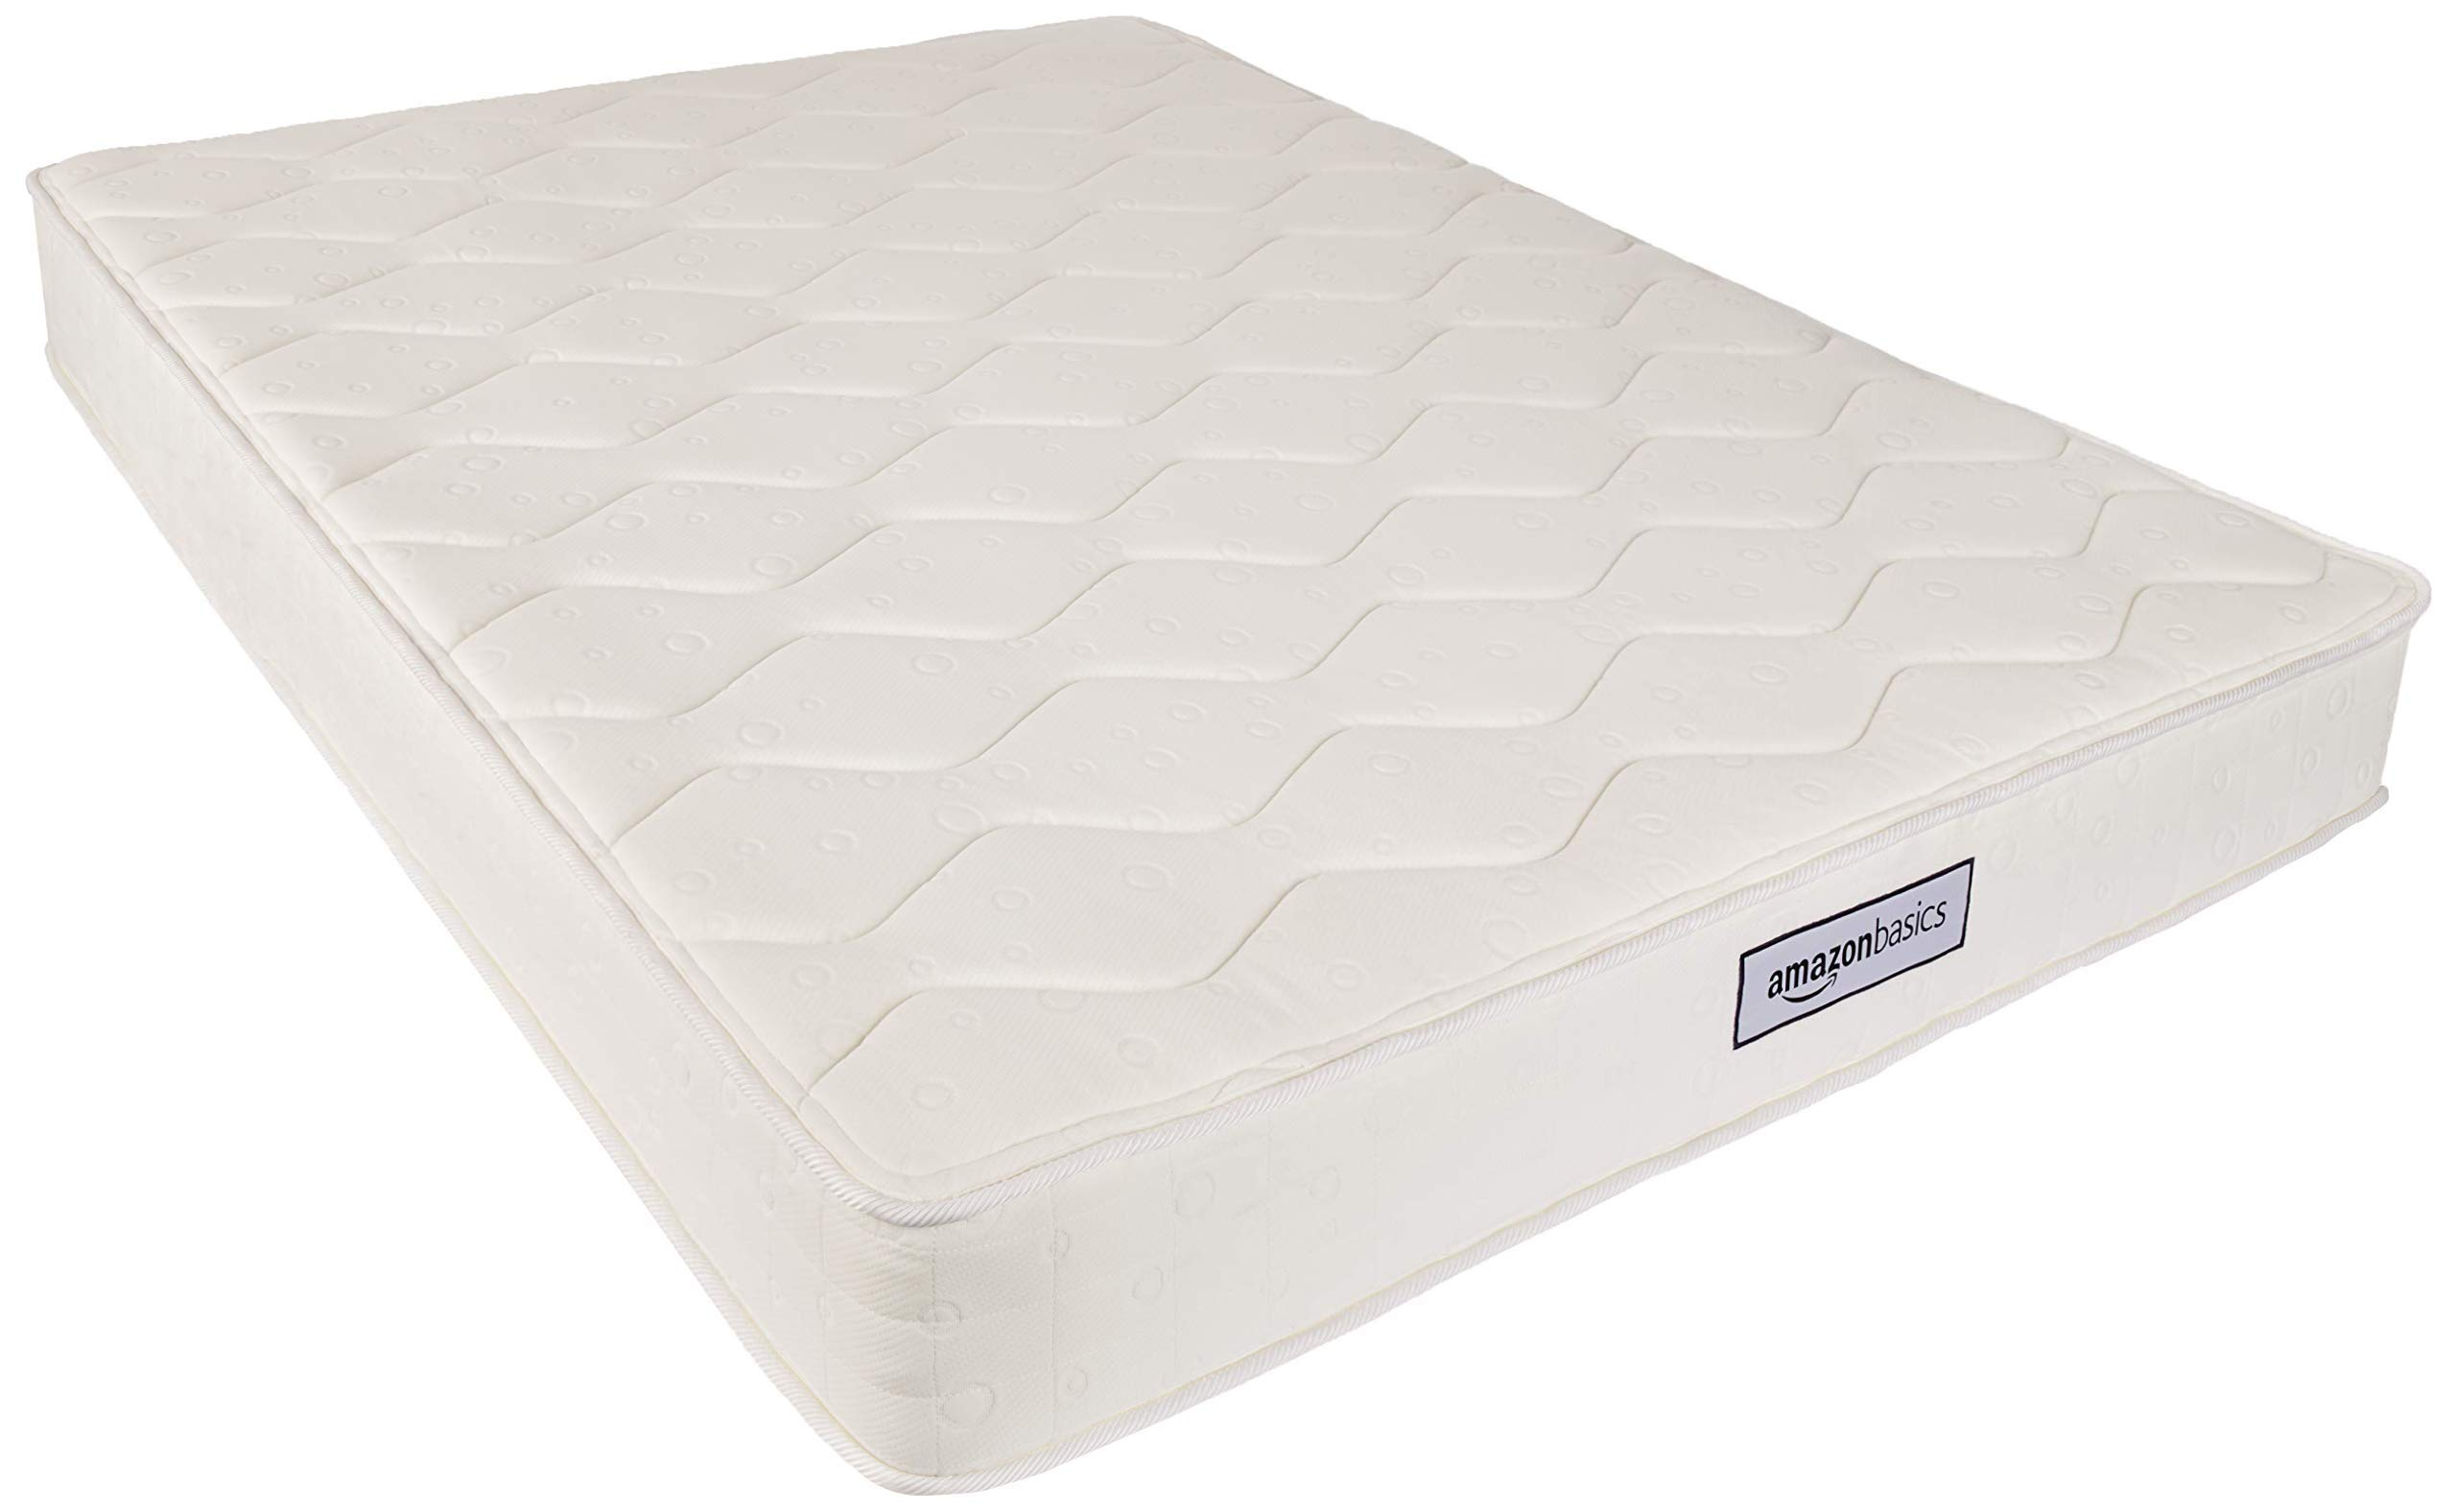 AmazonBasics Coil Mattress in a Box - Features Individual Pocket Spring for Motion Isolation, High-Density CertiPUR-US Certified Foam Layer - 8-Inch, Queen by AmazonBasics (Image #3)